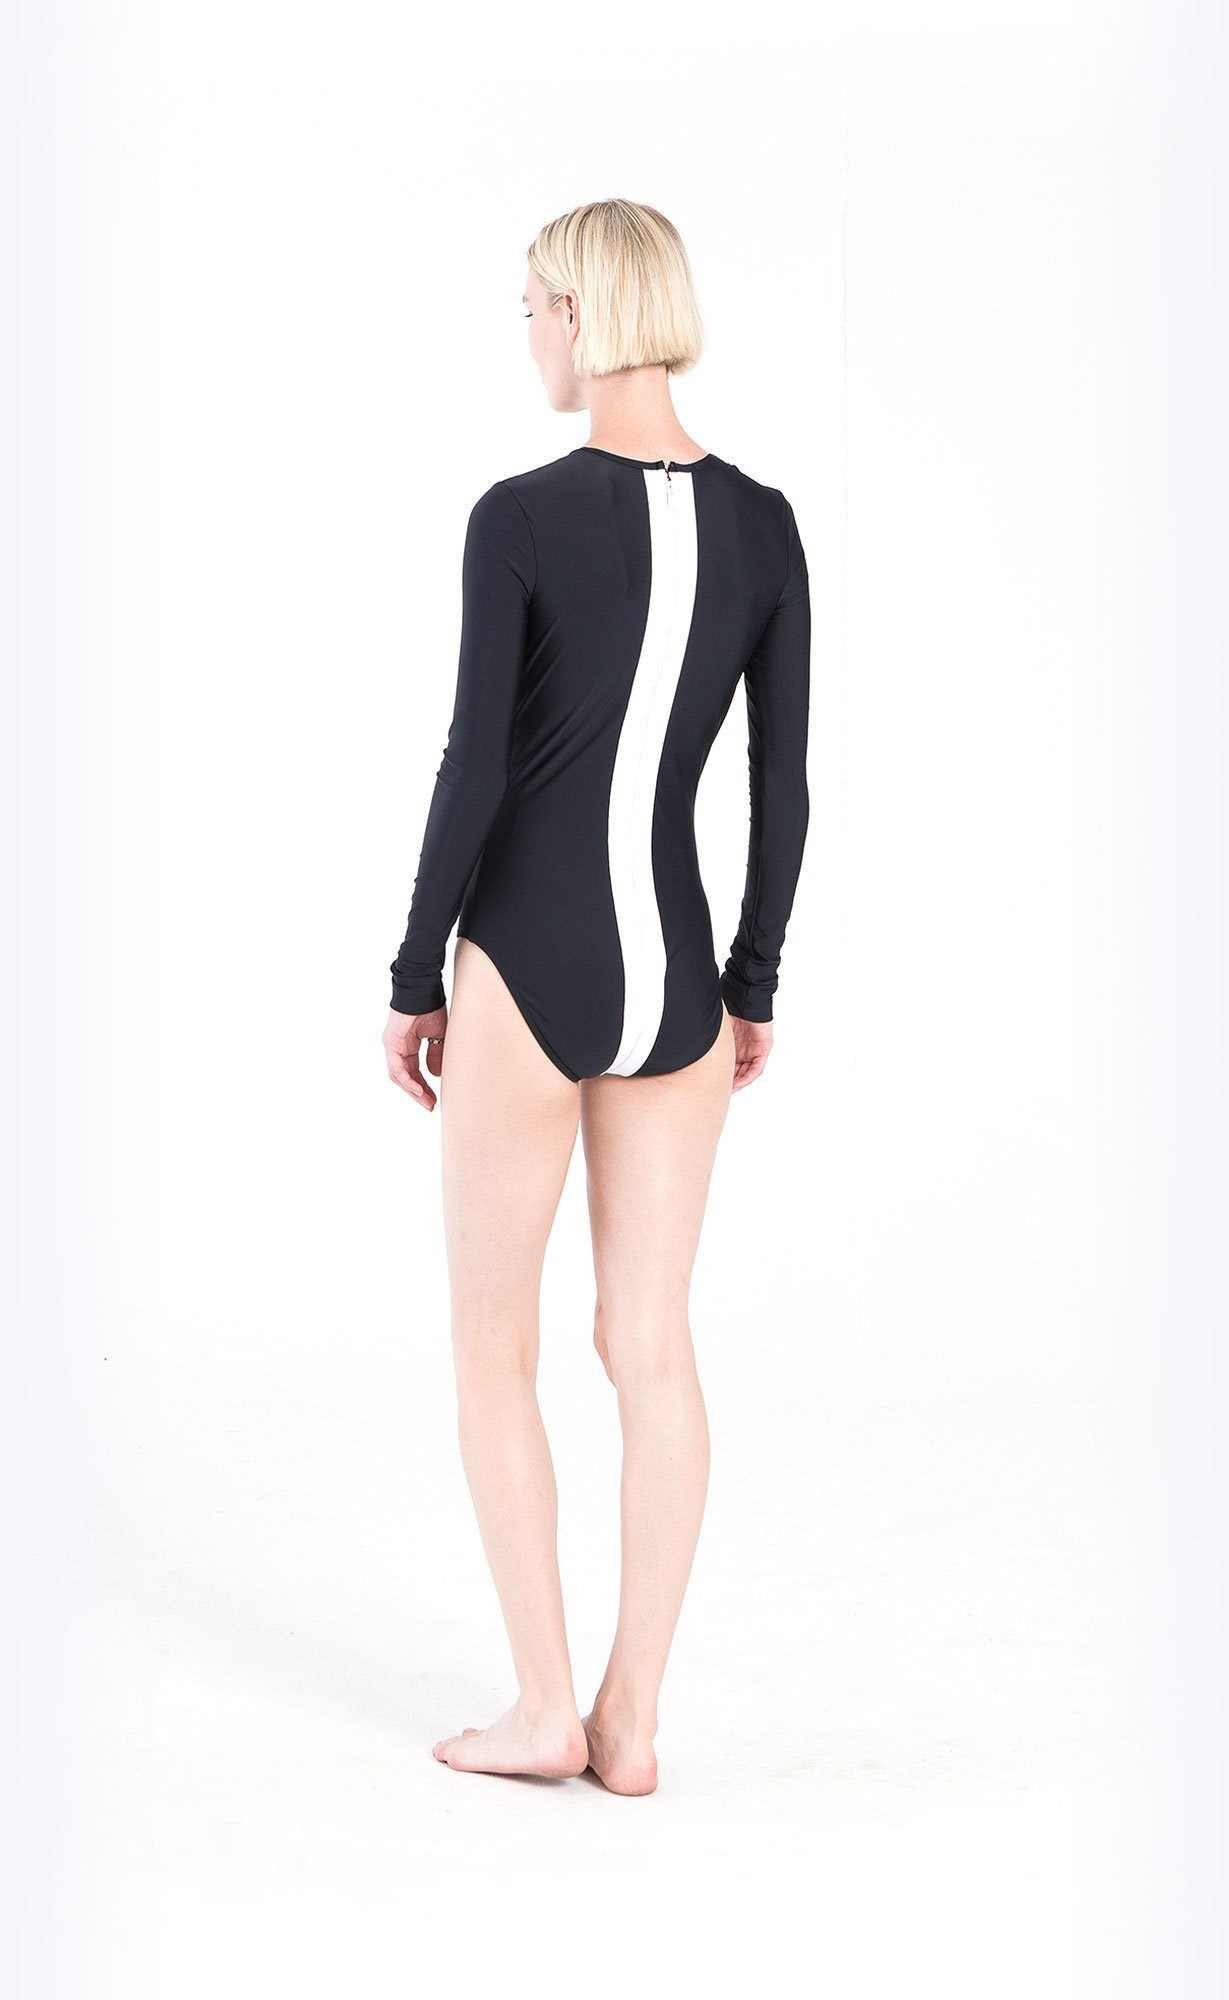 Long-Sleeved Vertical Stripe Swimsuit - Black/White